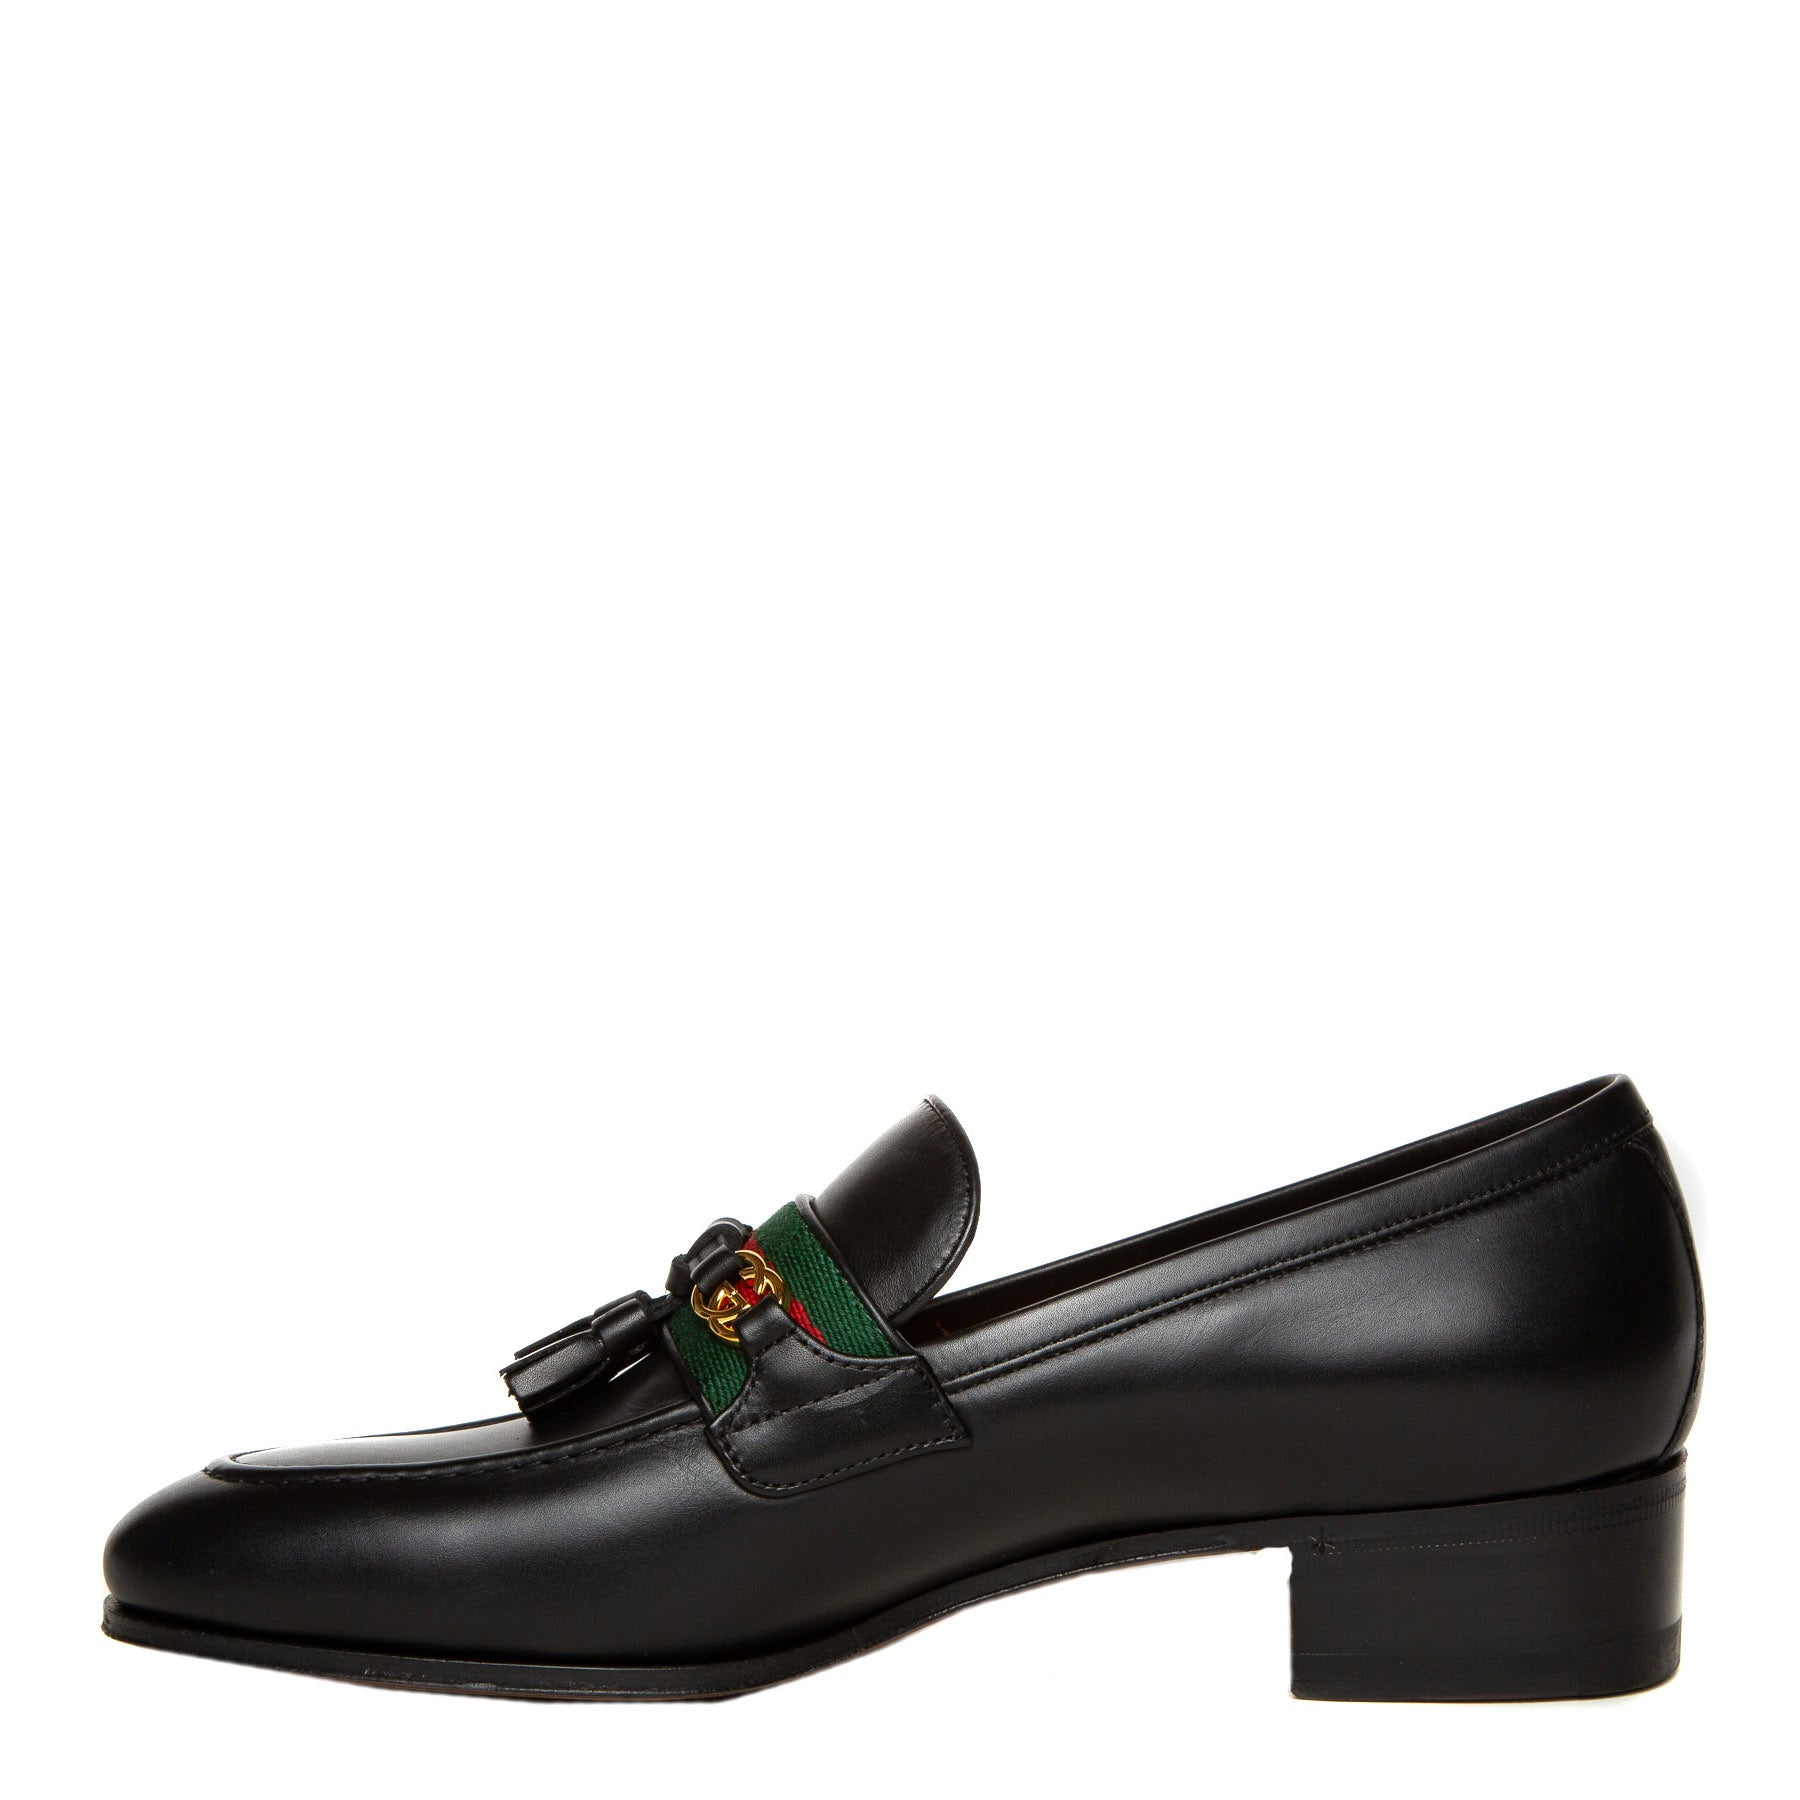 black leather Gucci loafers inner